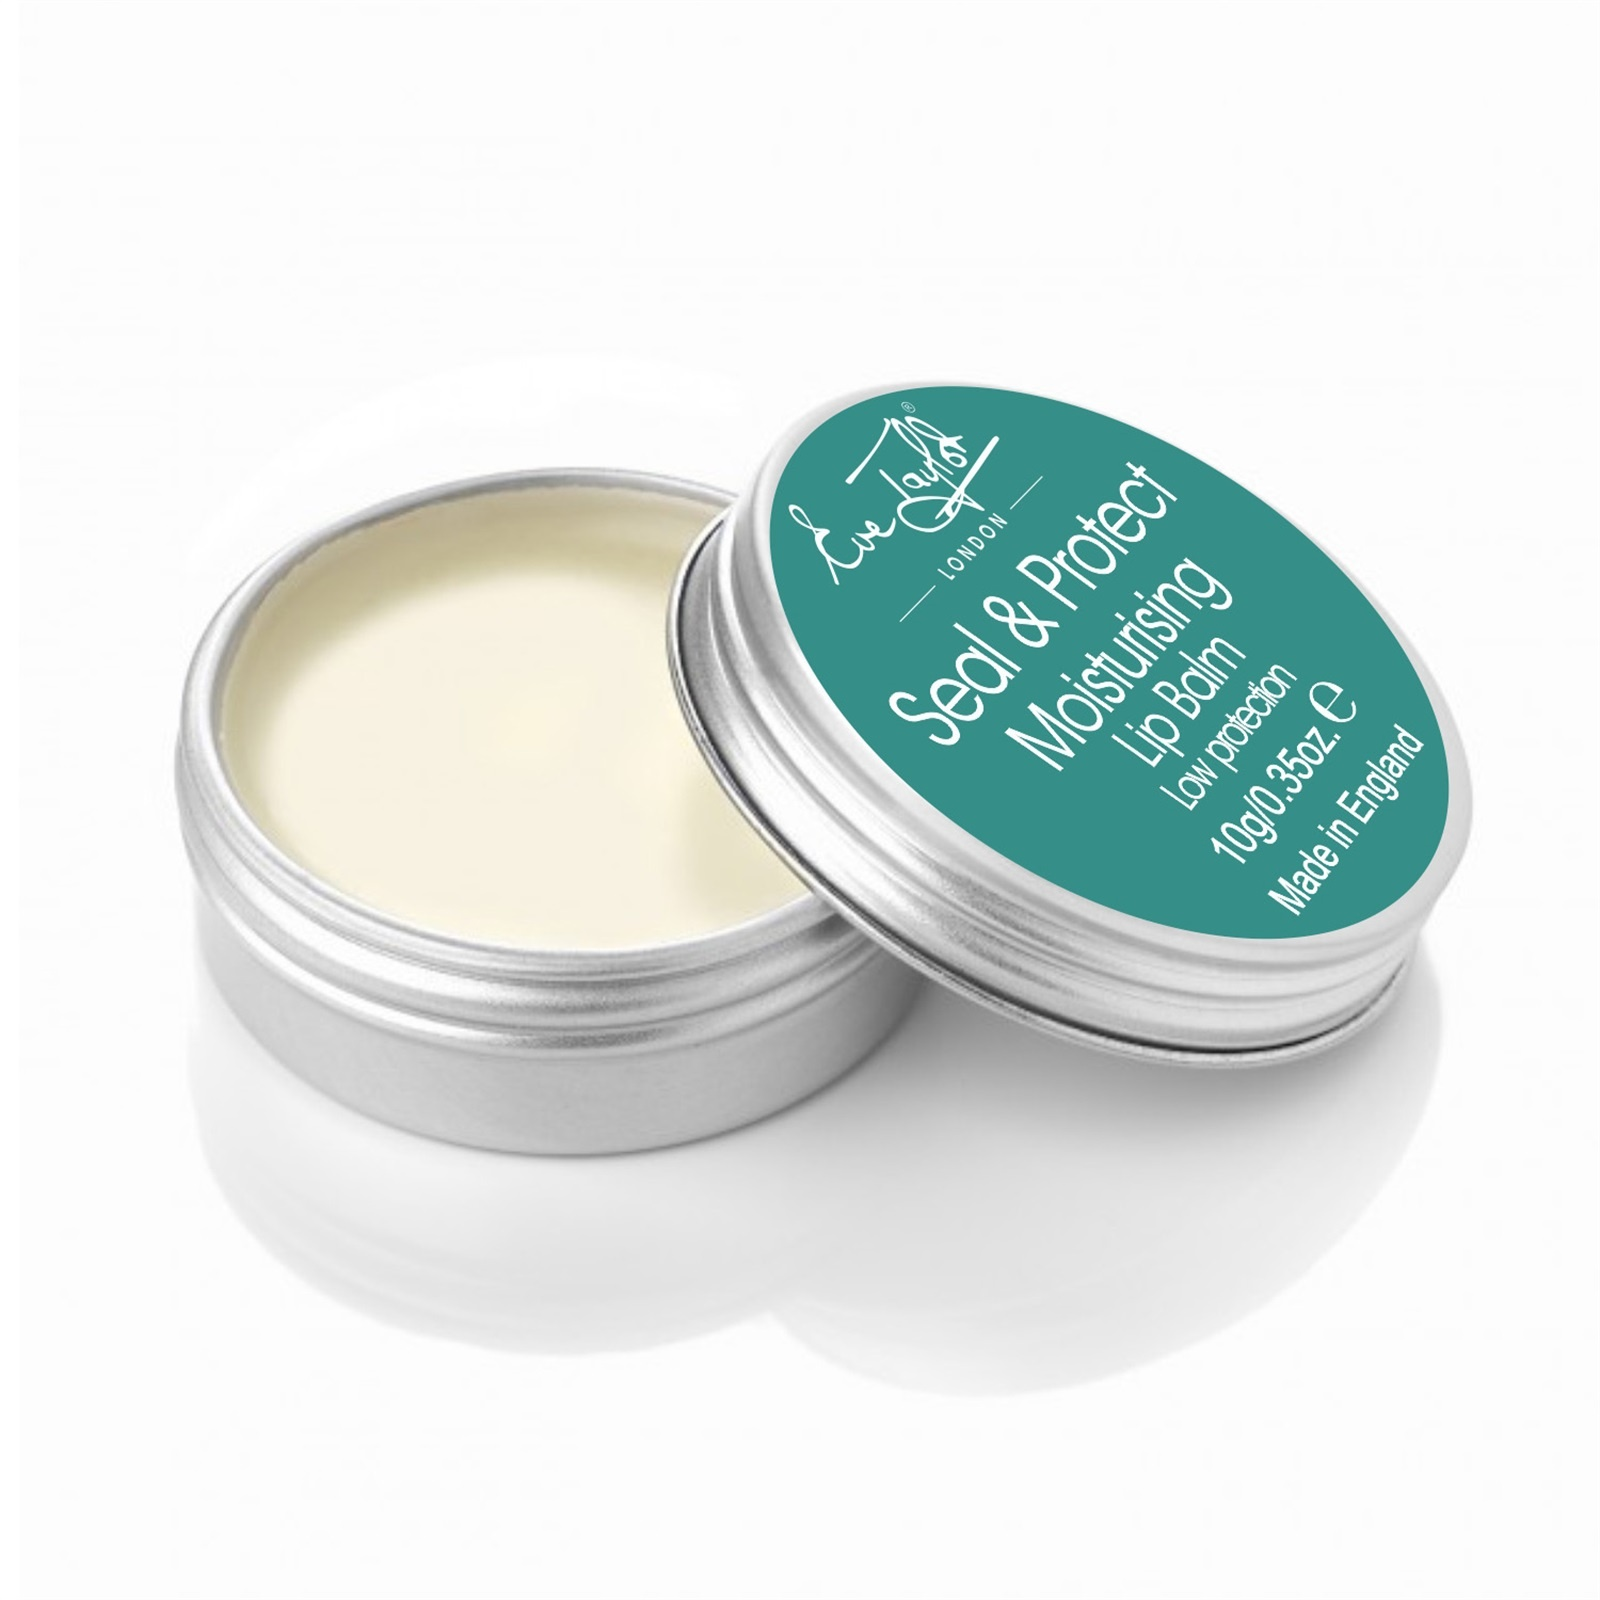 Eve Taylor Seal and Protect Lip Balm SPF10